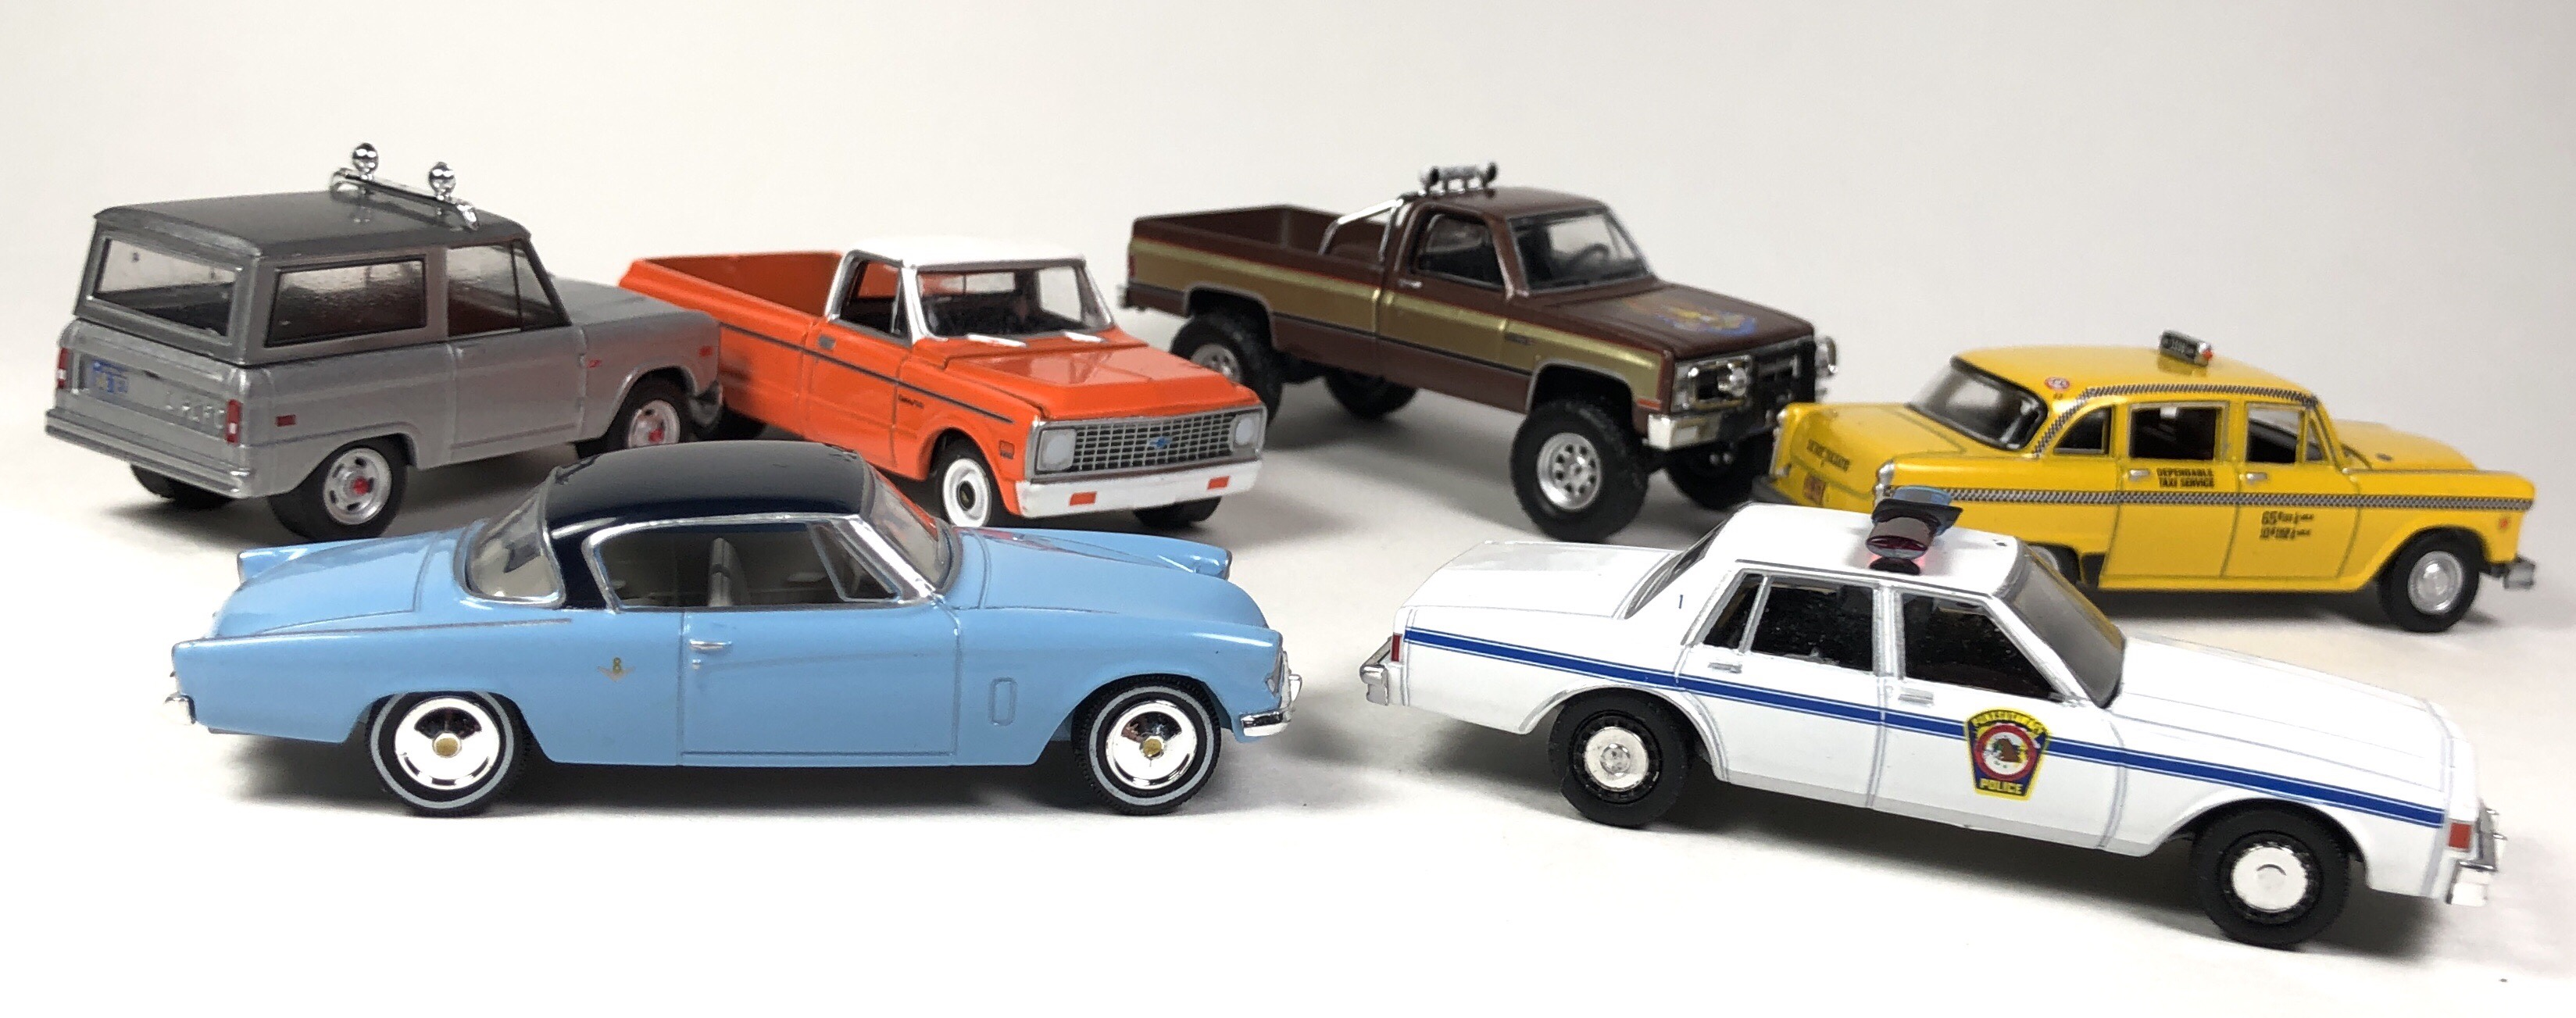 Finally The Fall Guy Truck Arrives With Greenlight Hollywood Series 26 Lamleygroup